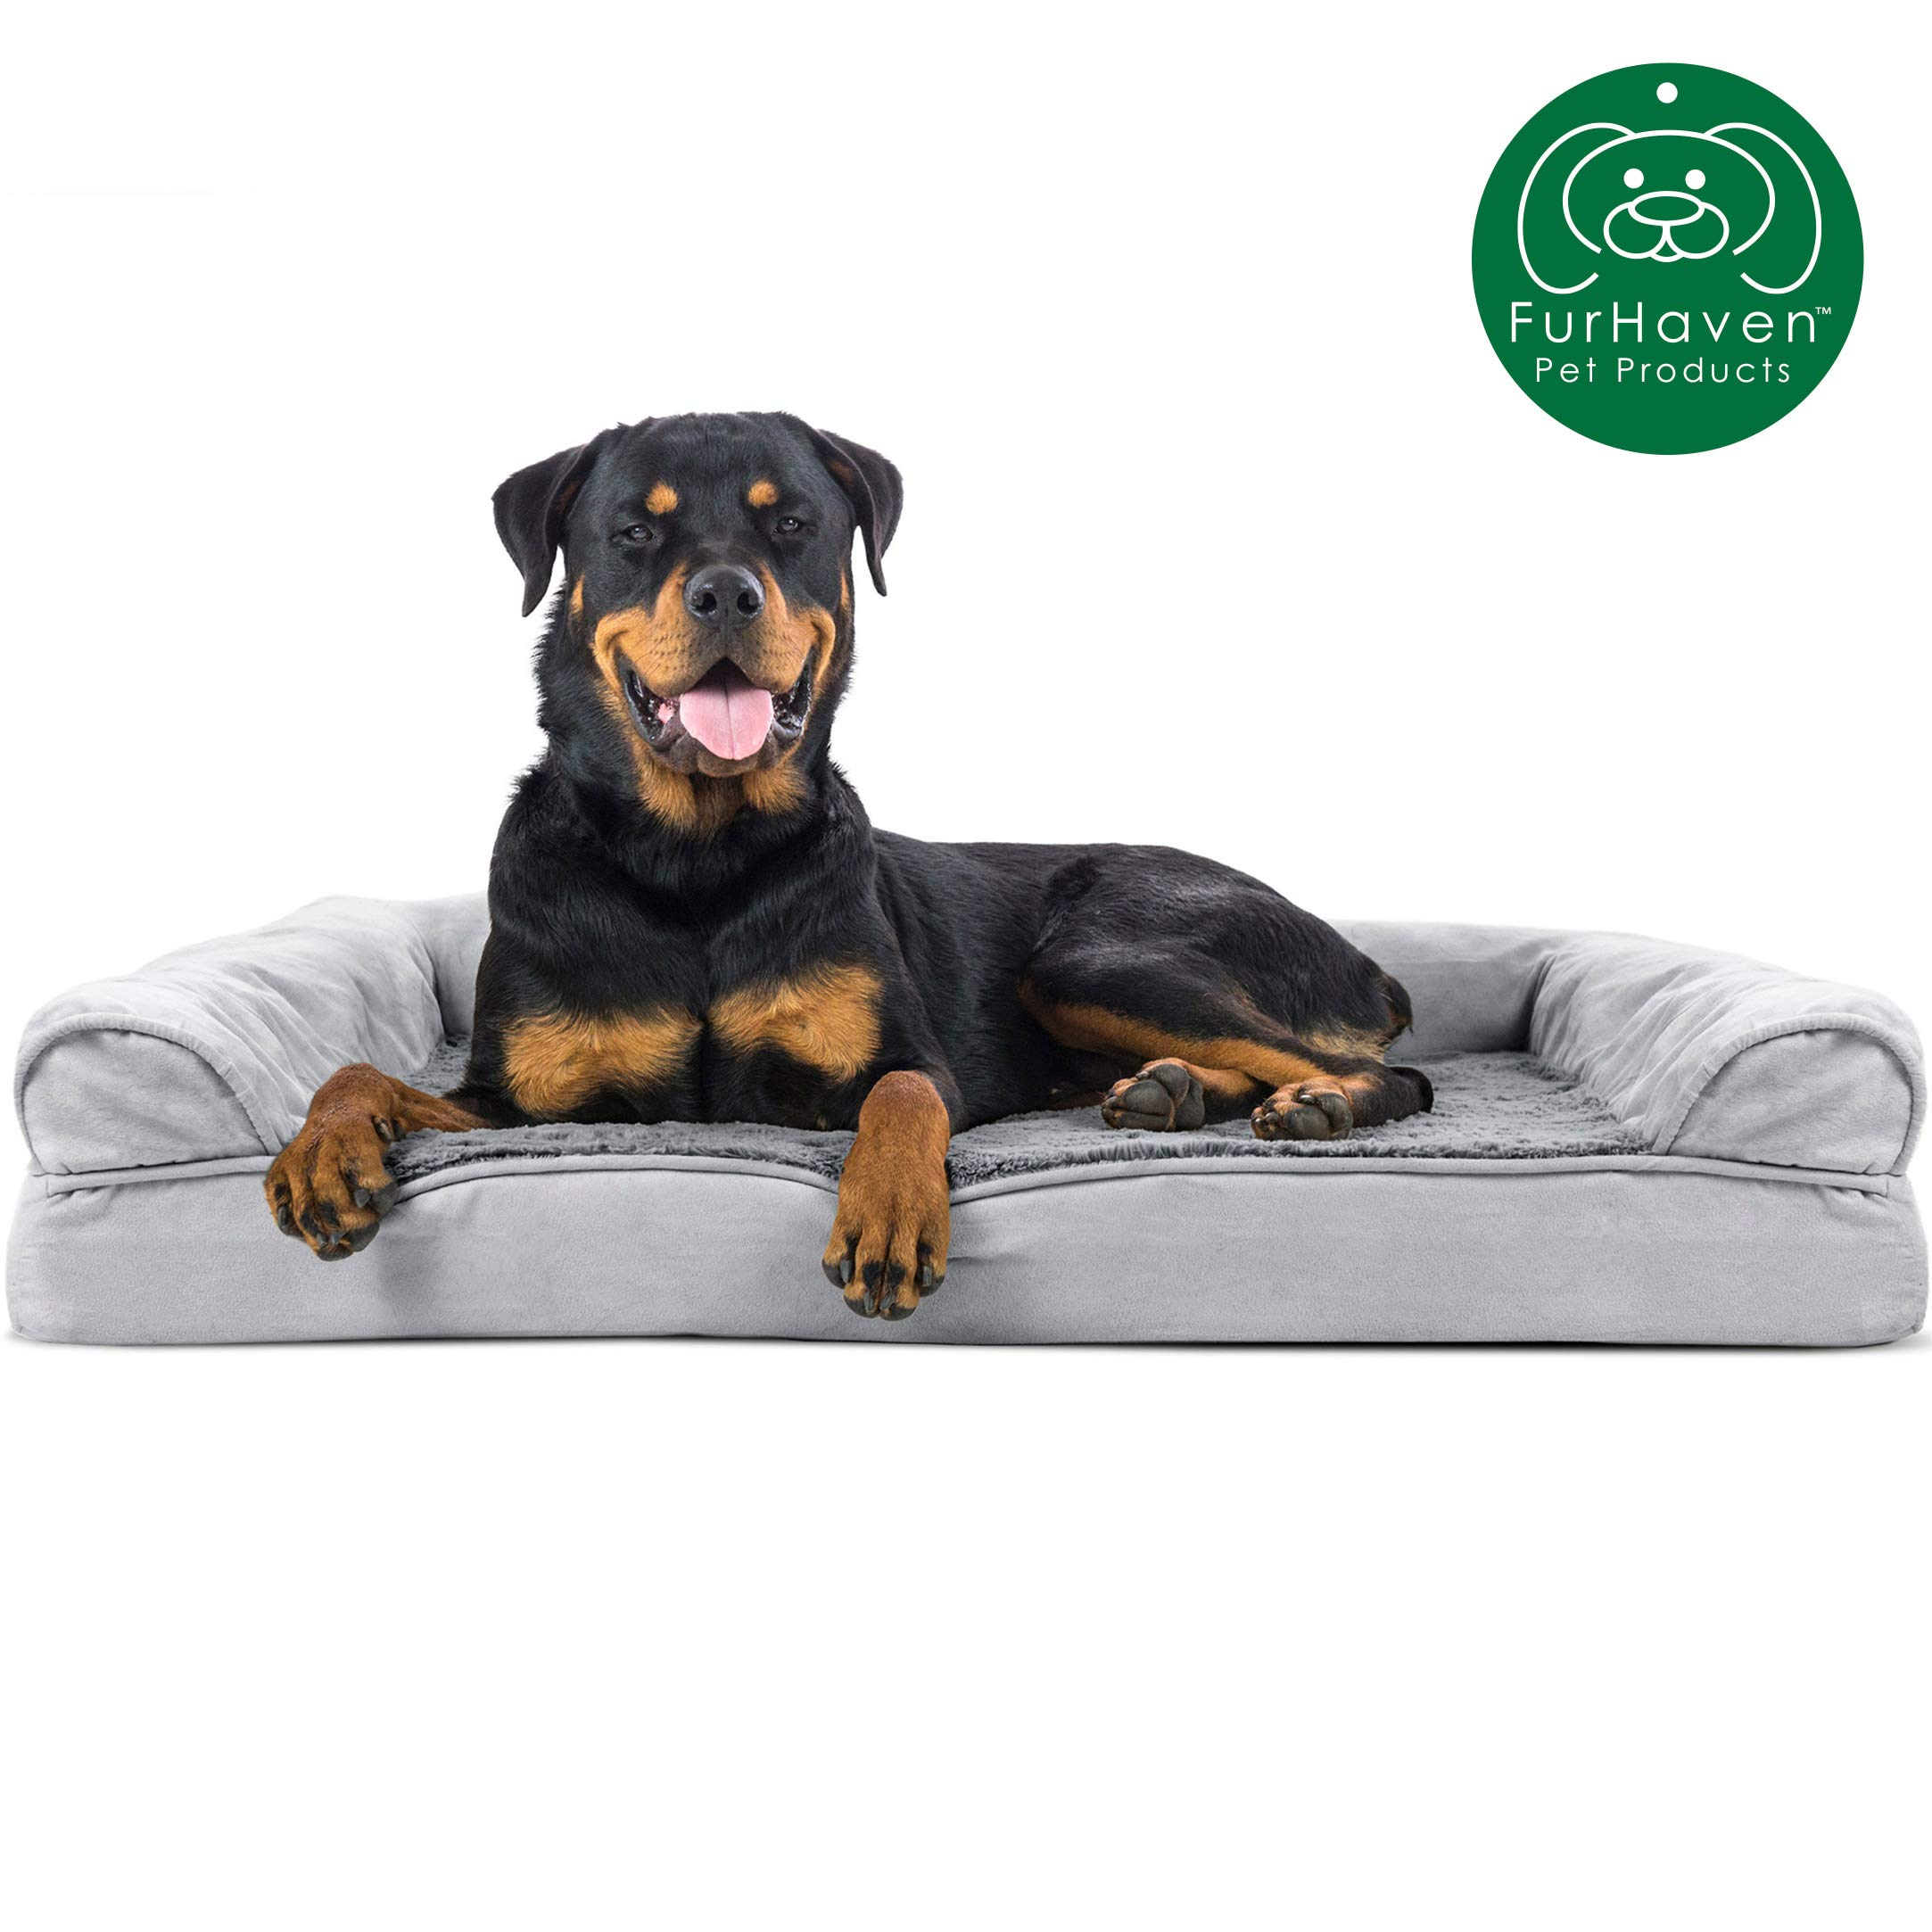 Furhaven Pet Dog Bed | Orthopedic Ultra Plush Faux Fur & Suede Traditional Sofa-Style Living Room Couch Pet Bed w/ Removable Cover for Dogs & Cats, Gray, Jumbo by Furhaven